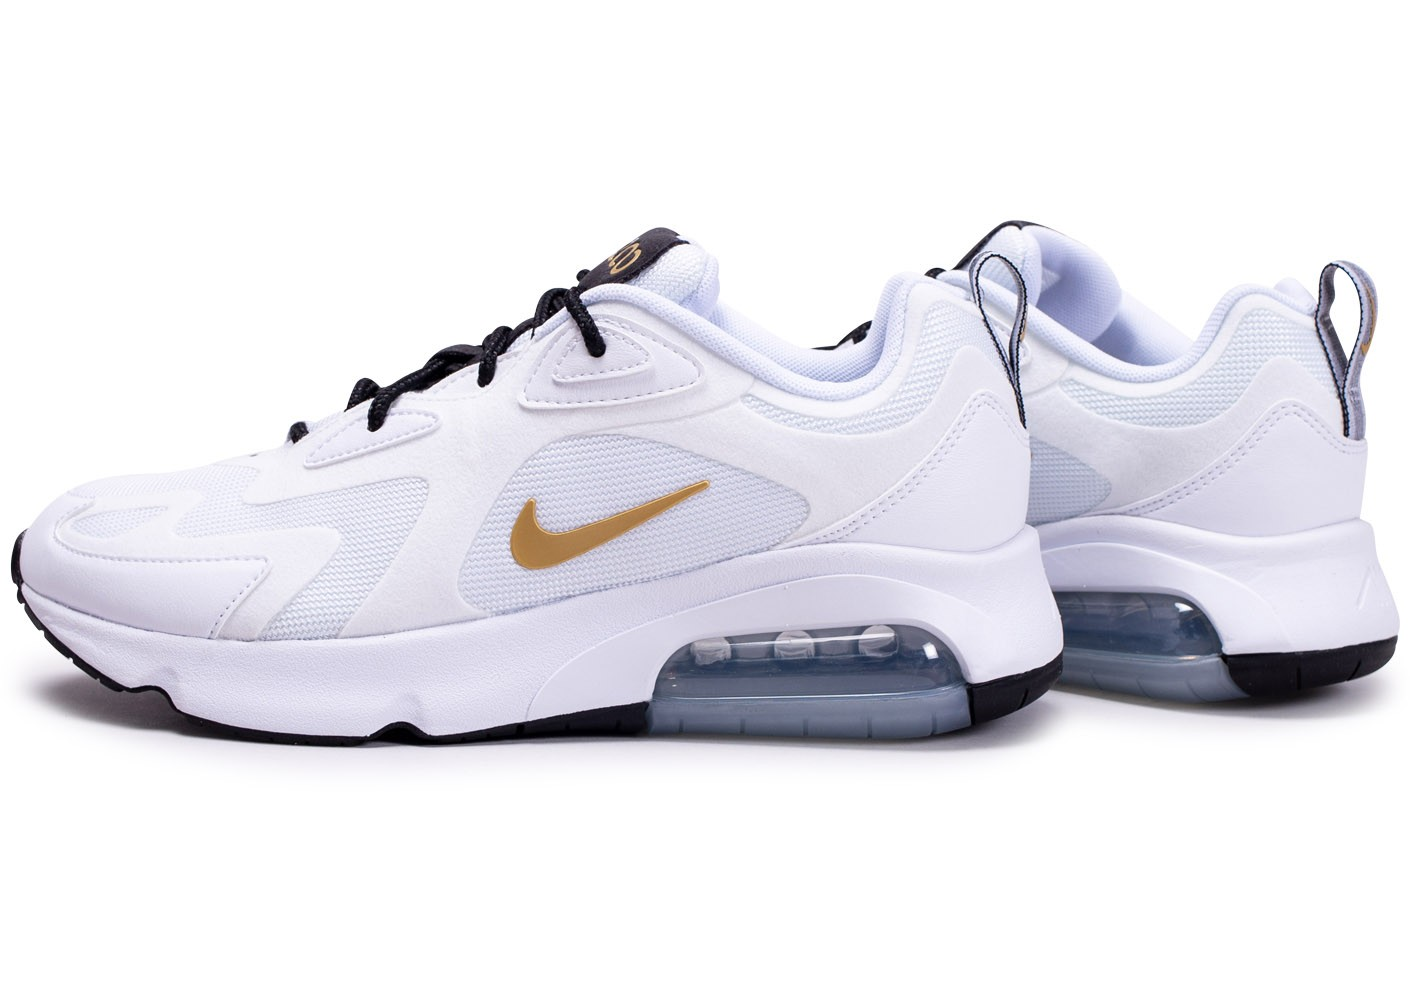 Nike Air Max 200 blanc or Chaussures Baskets homme Chausport